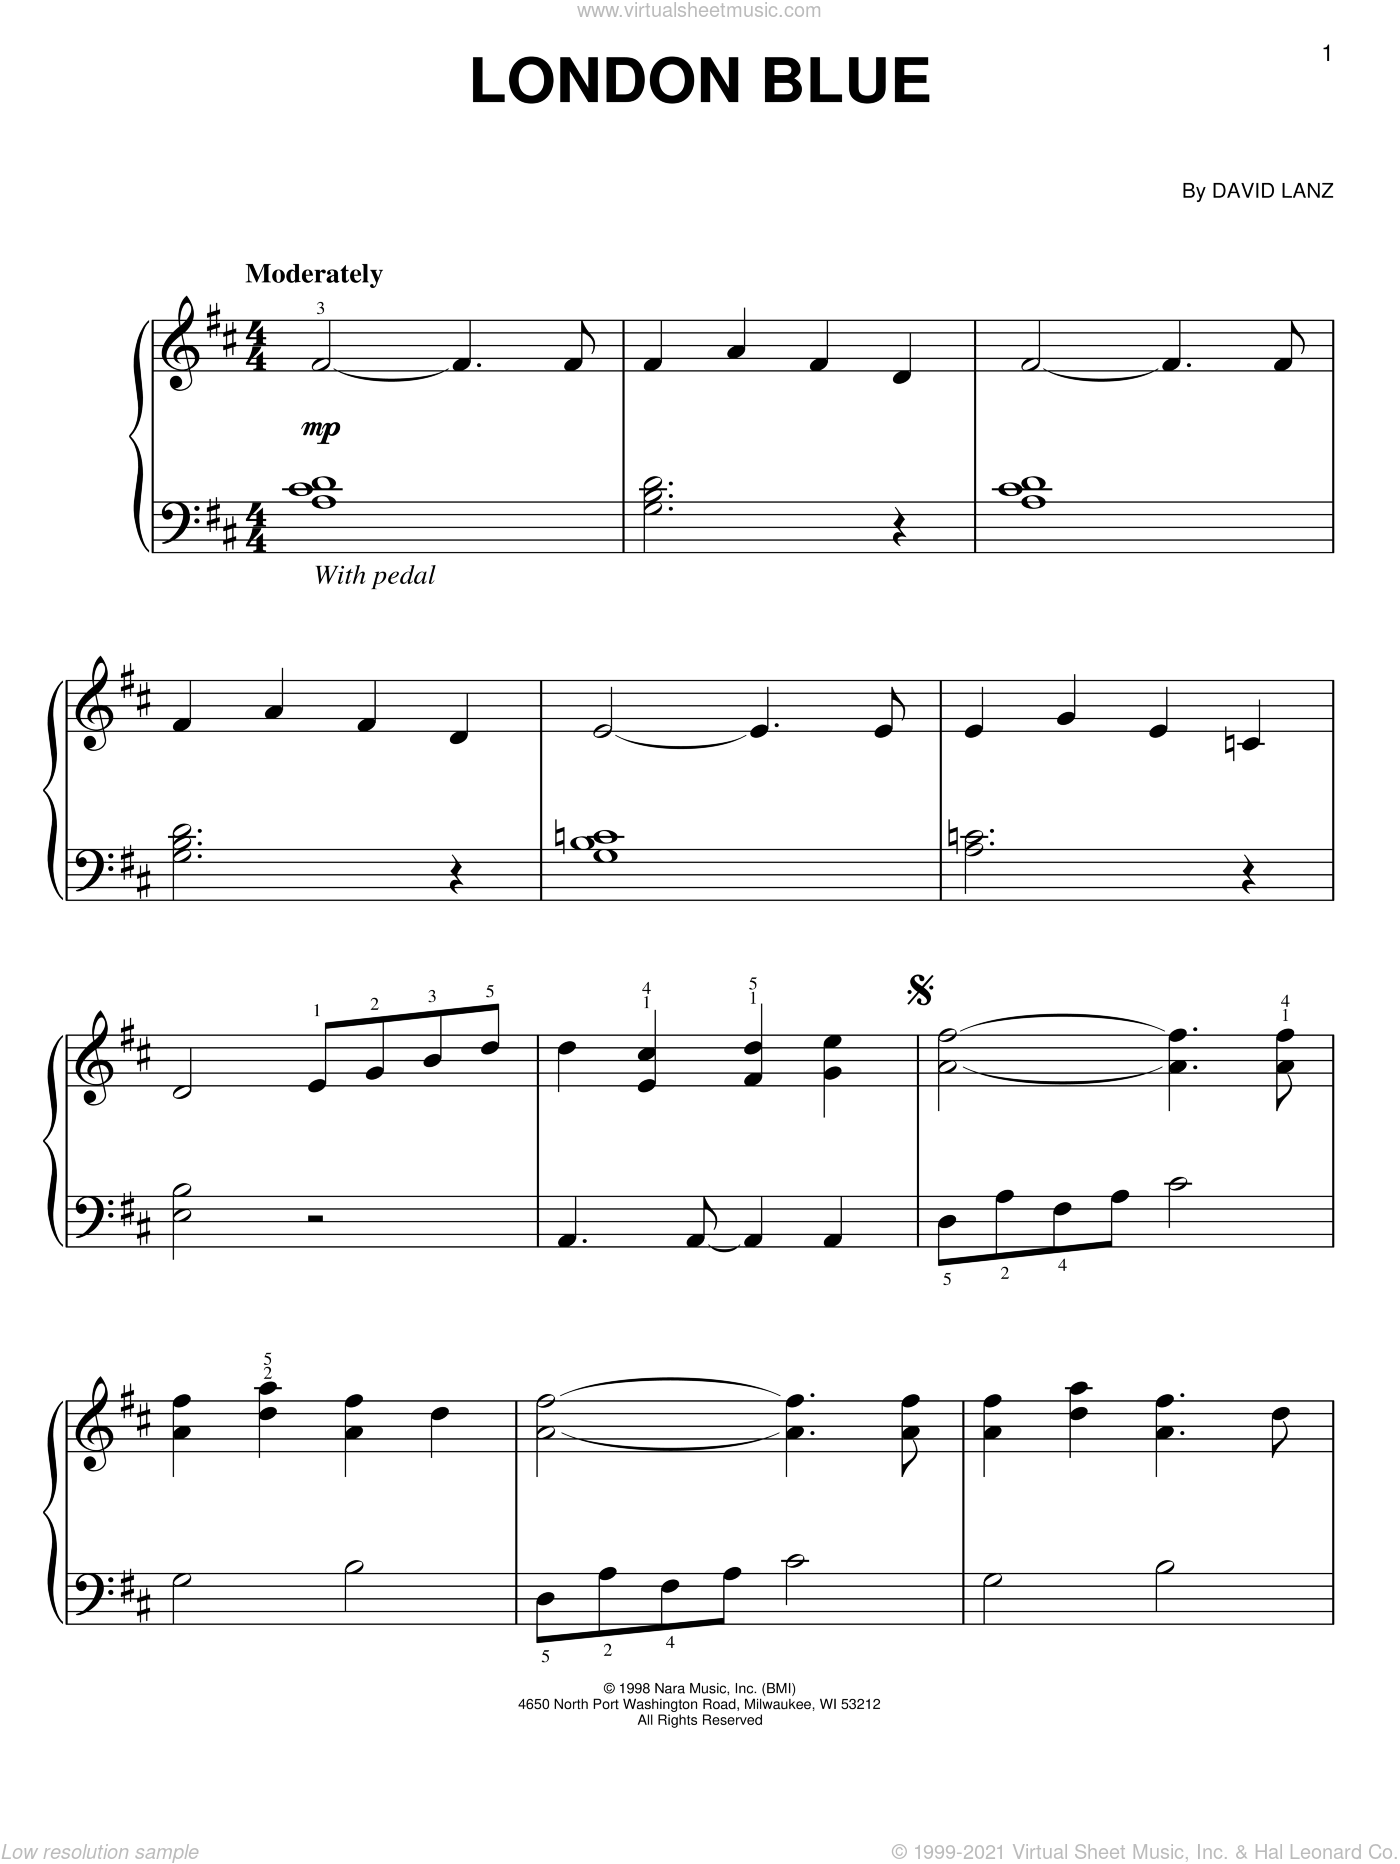 London Blue sheet music for piano solo by David Lanz, easy skill level